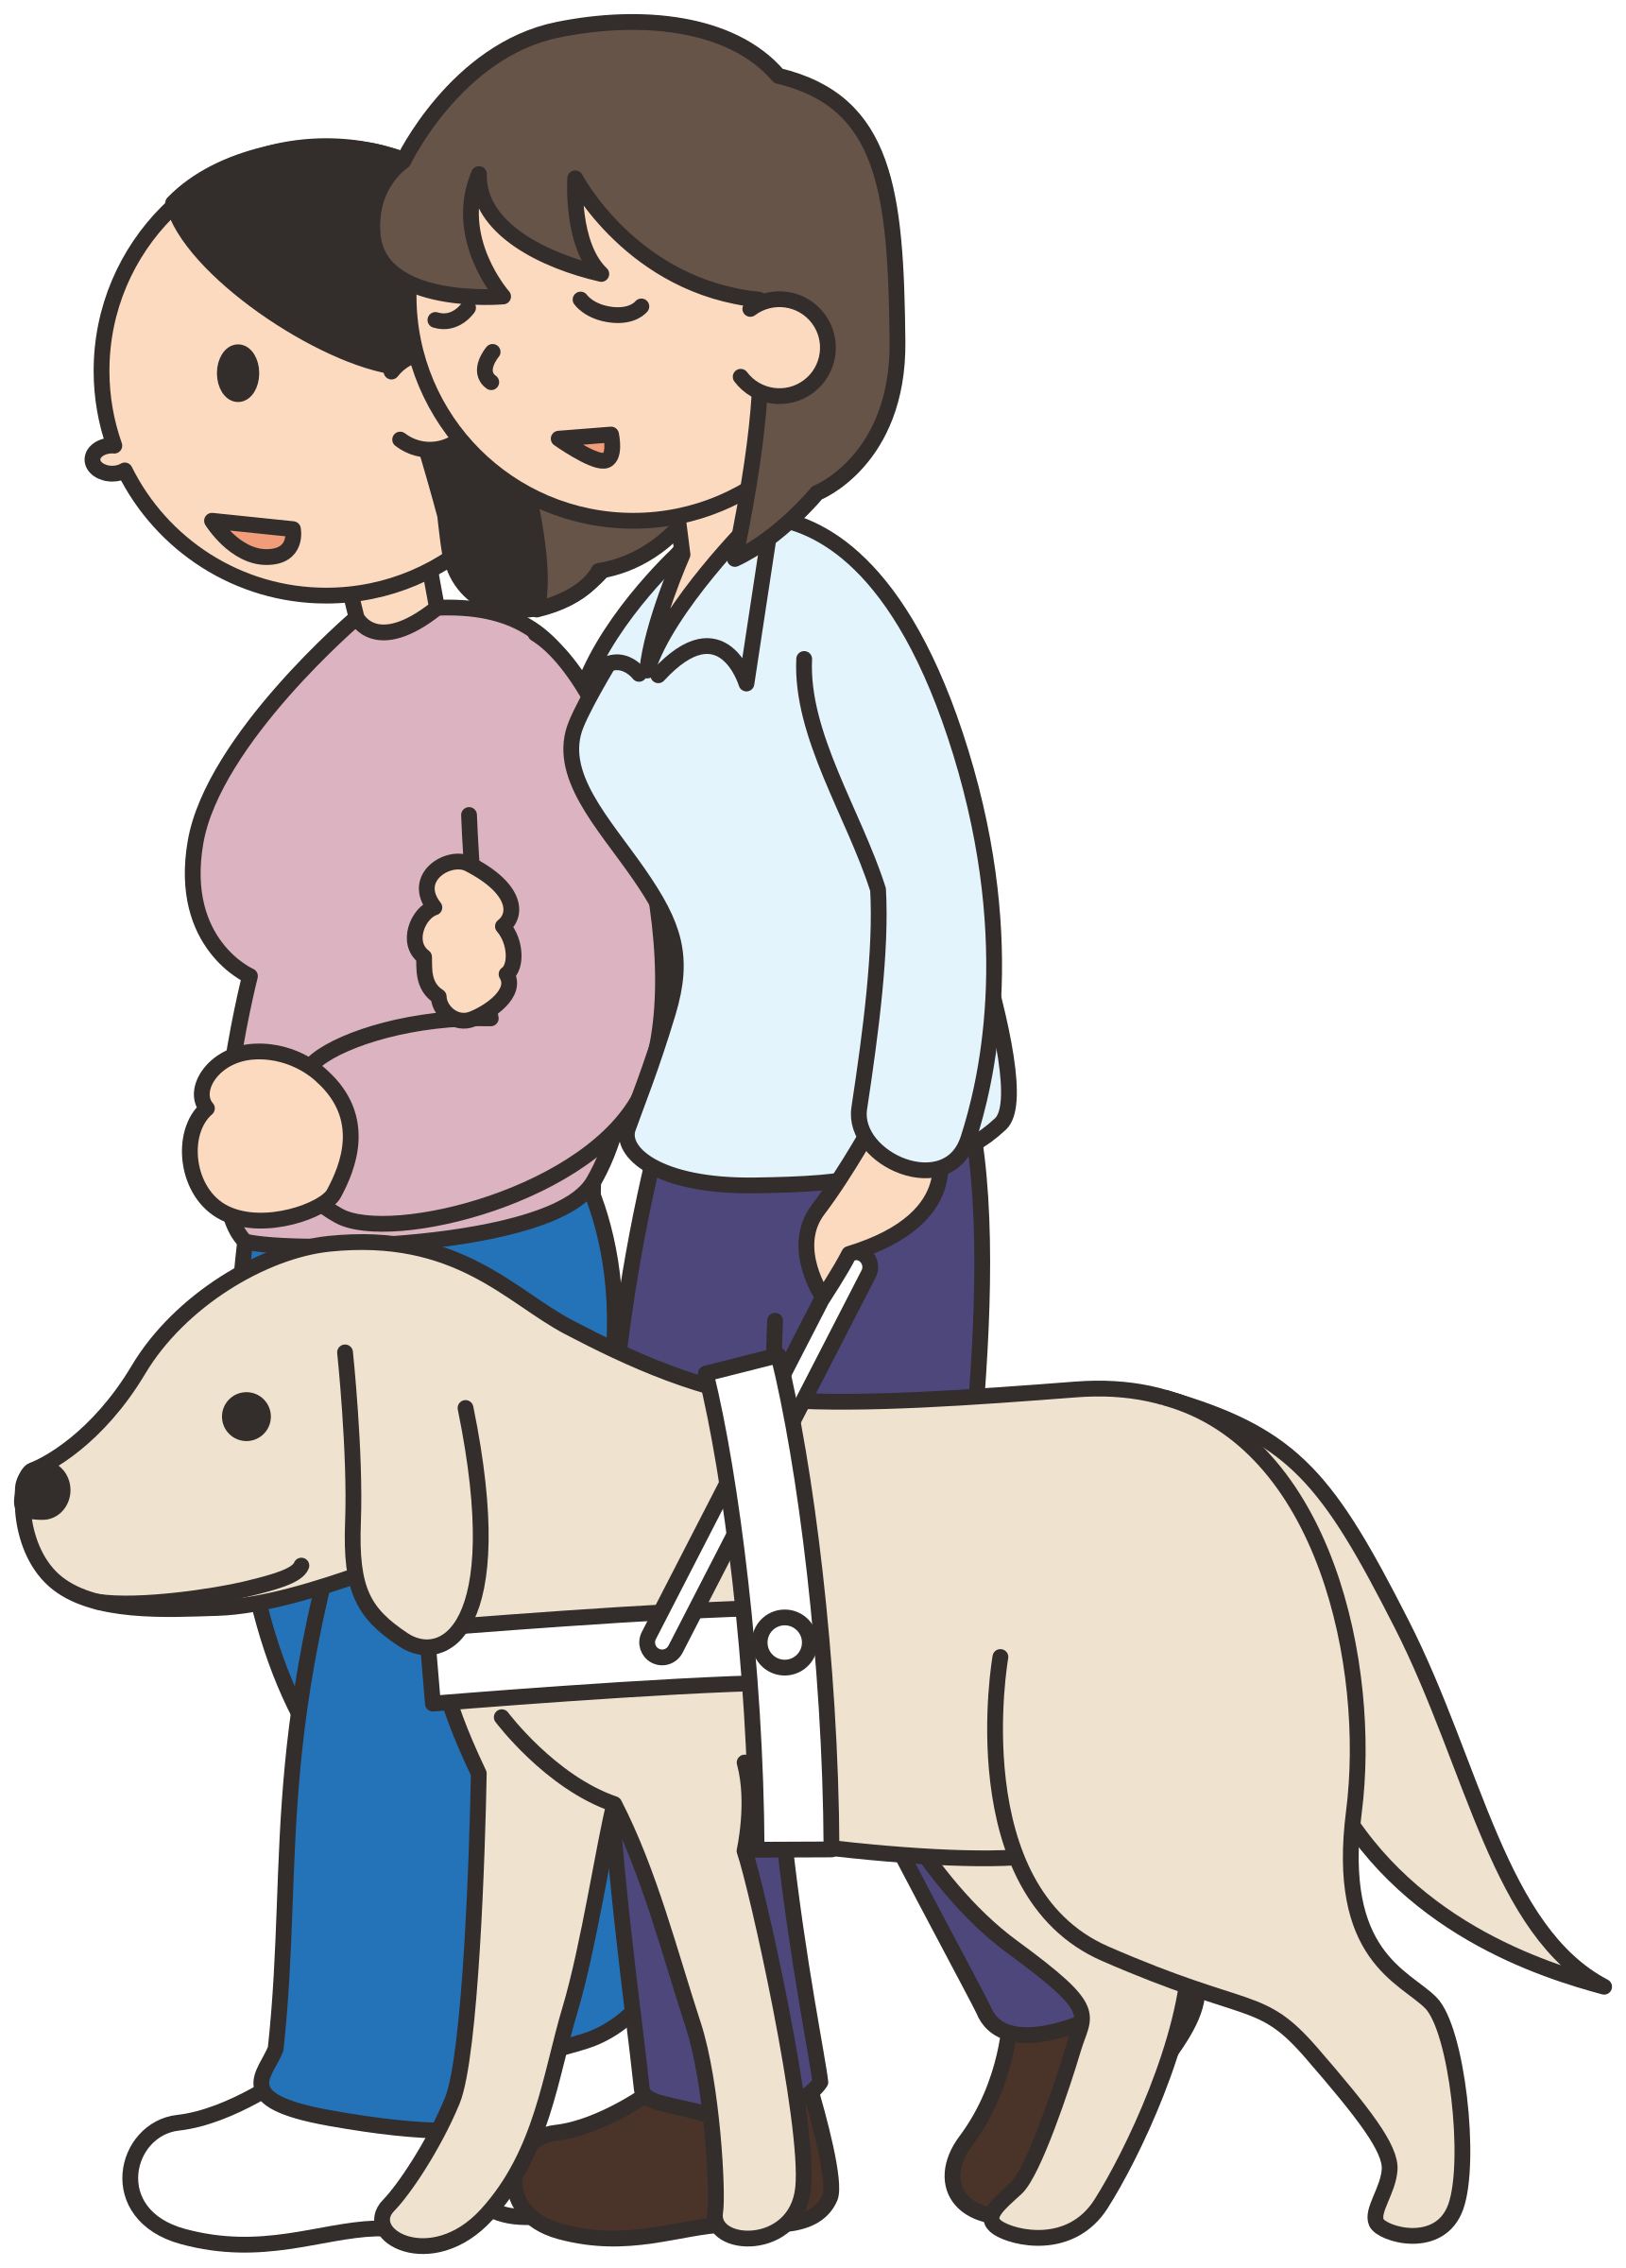 Clipart dog person. Blind visually impaired woman